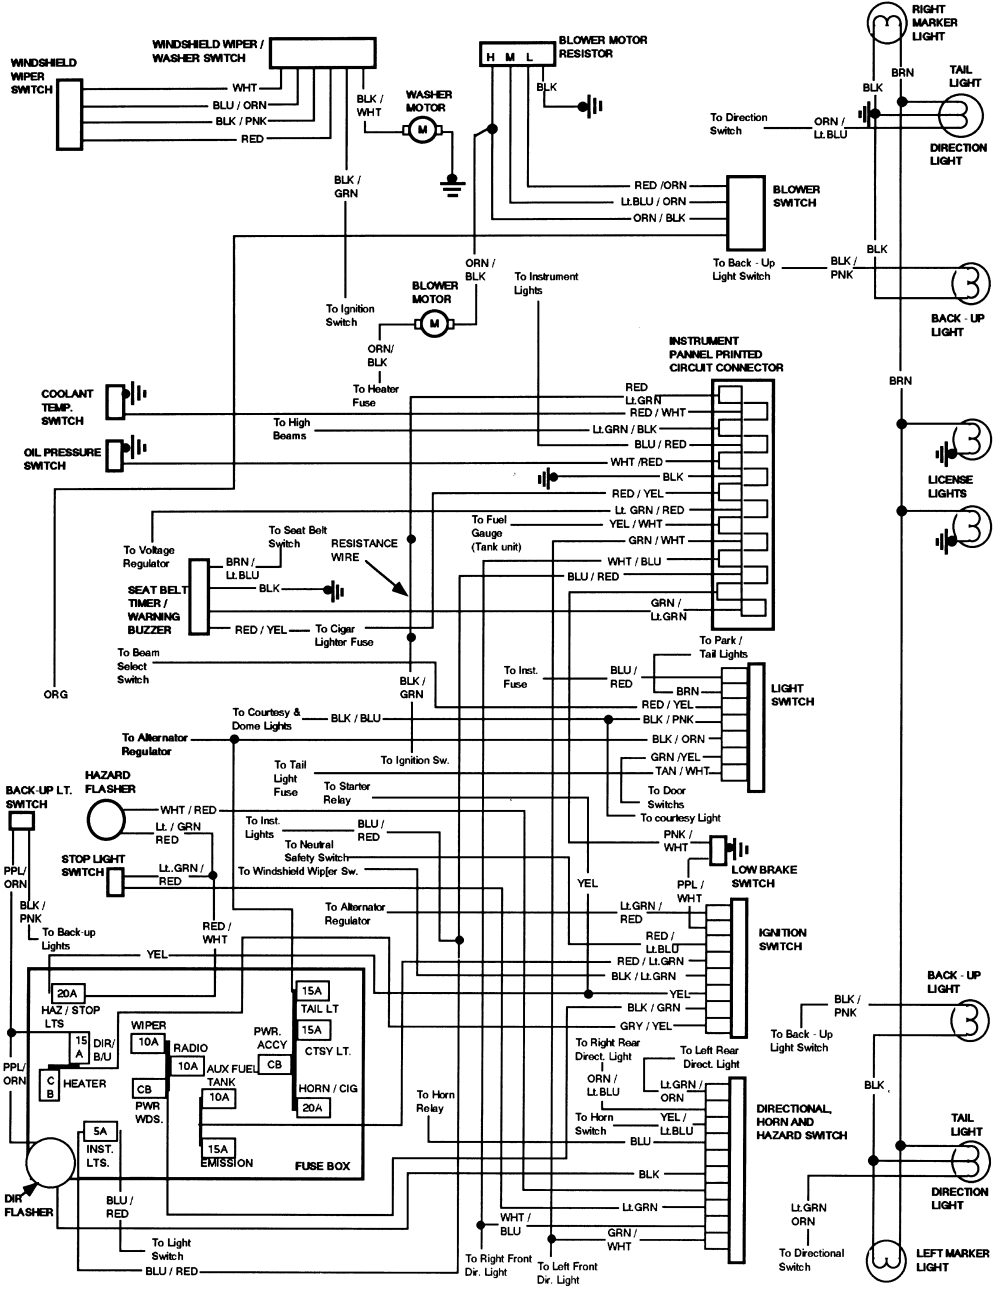 2008 f350 ignition wiring diagram